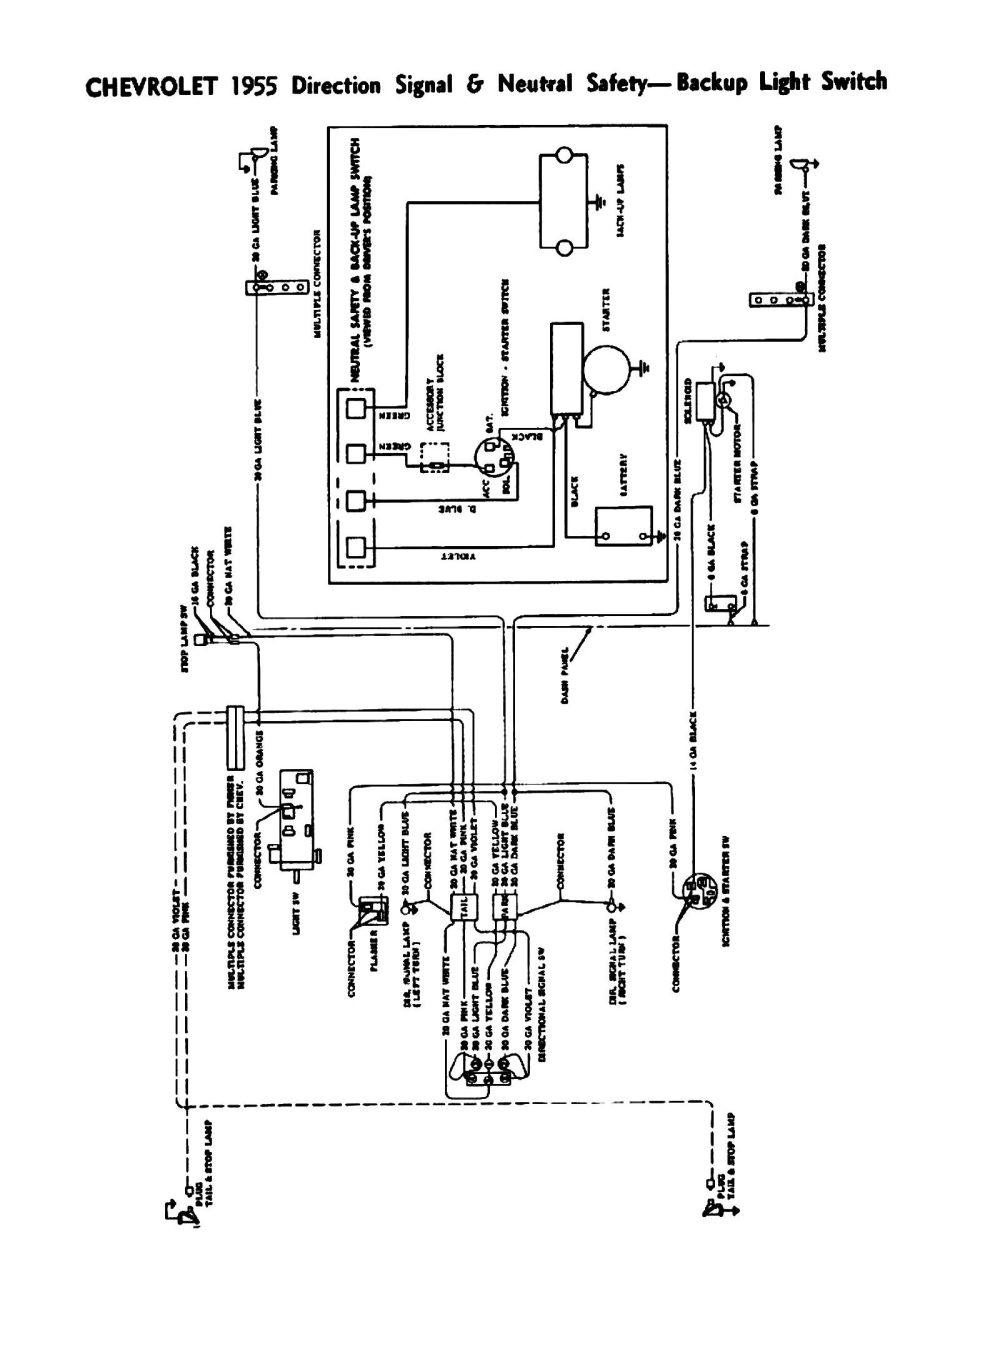 medium resolution of ignition wiring on a 1950 chevy wiring diagram databaseignition wiring on a 1950 chevy wiring diagram